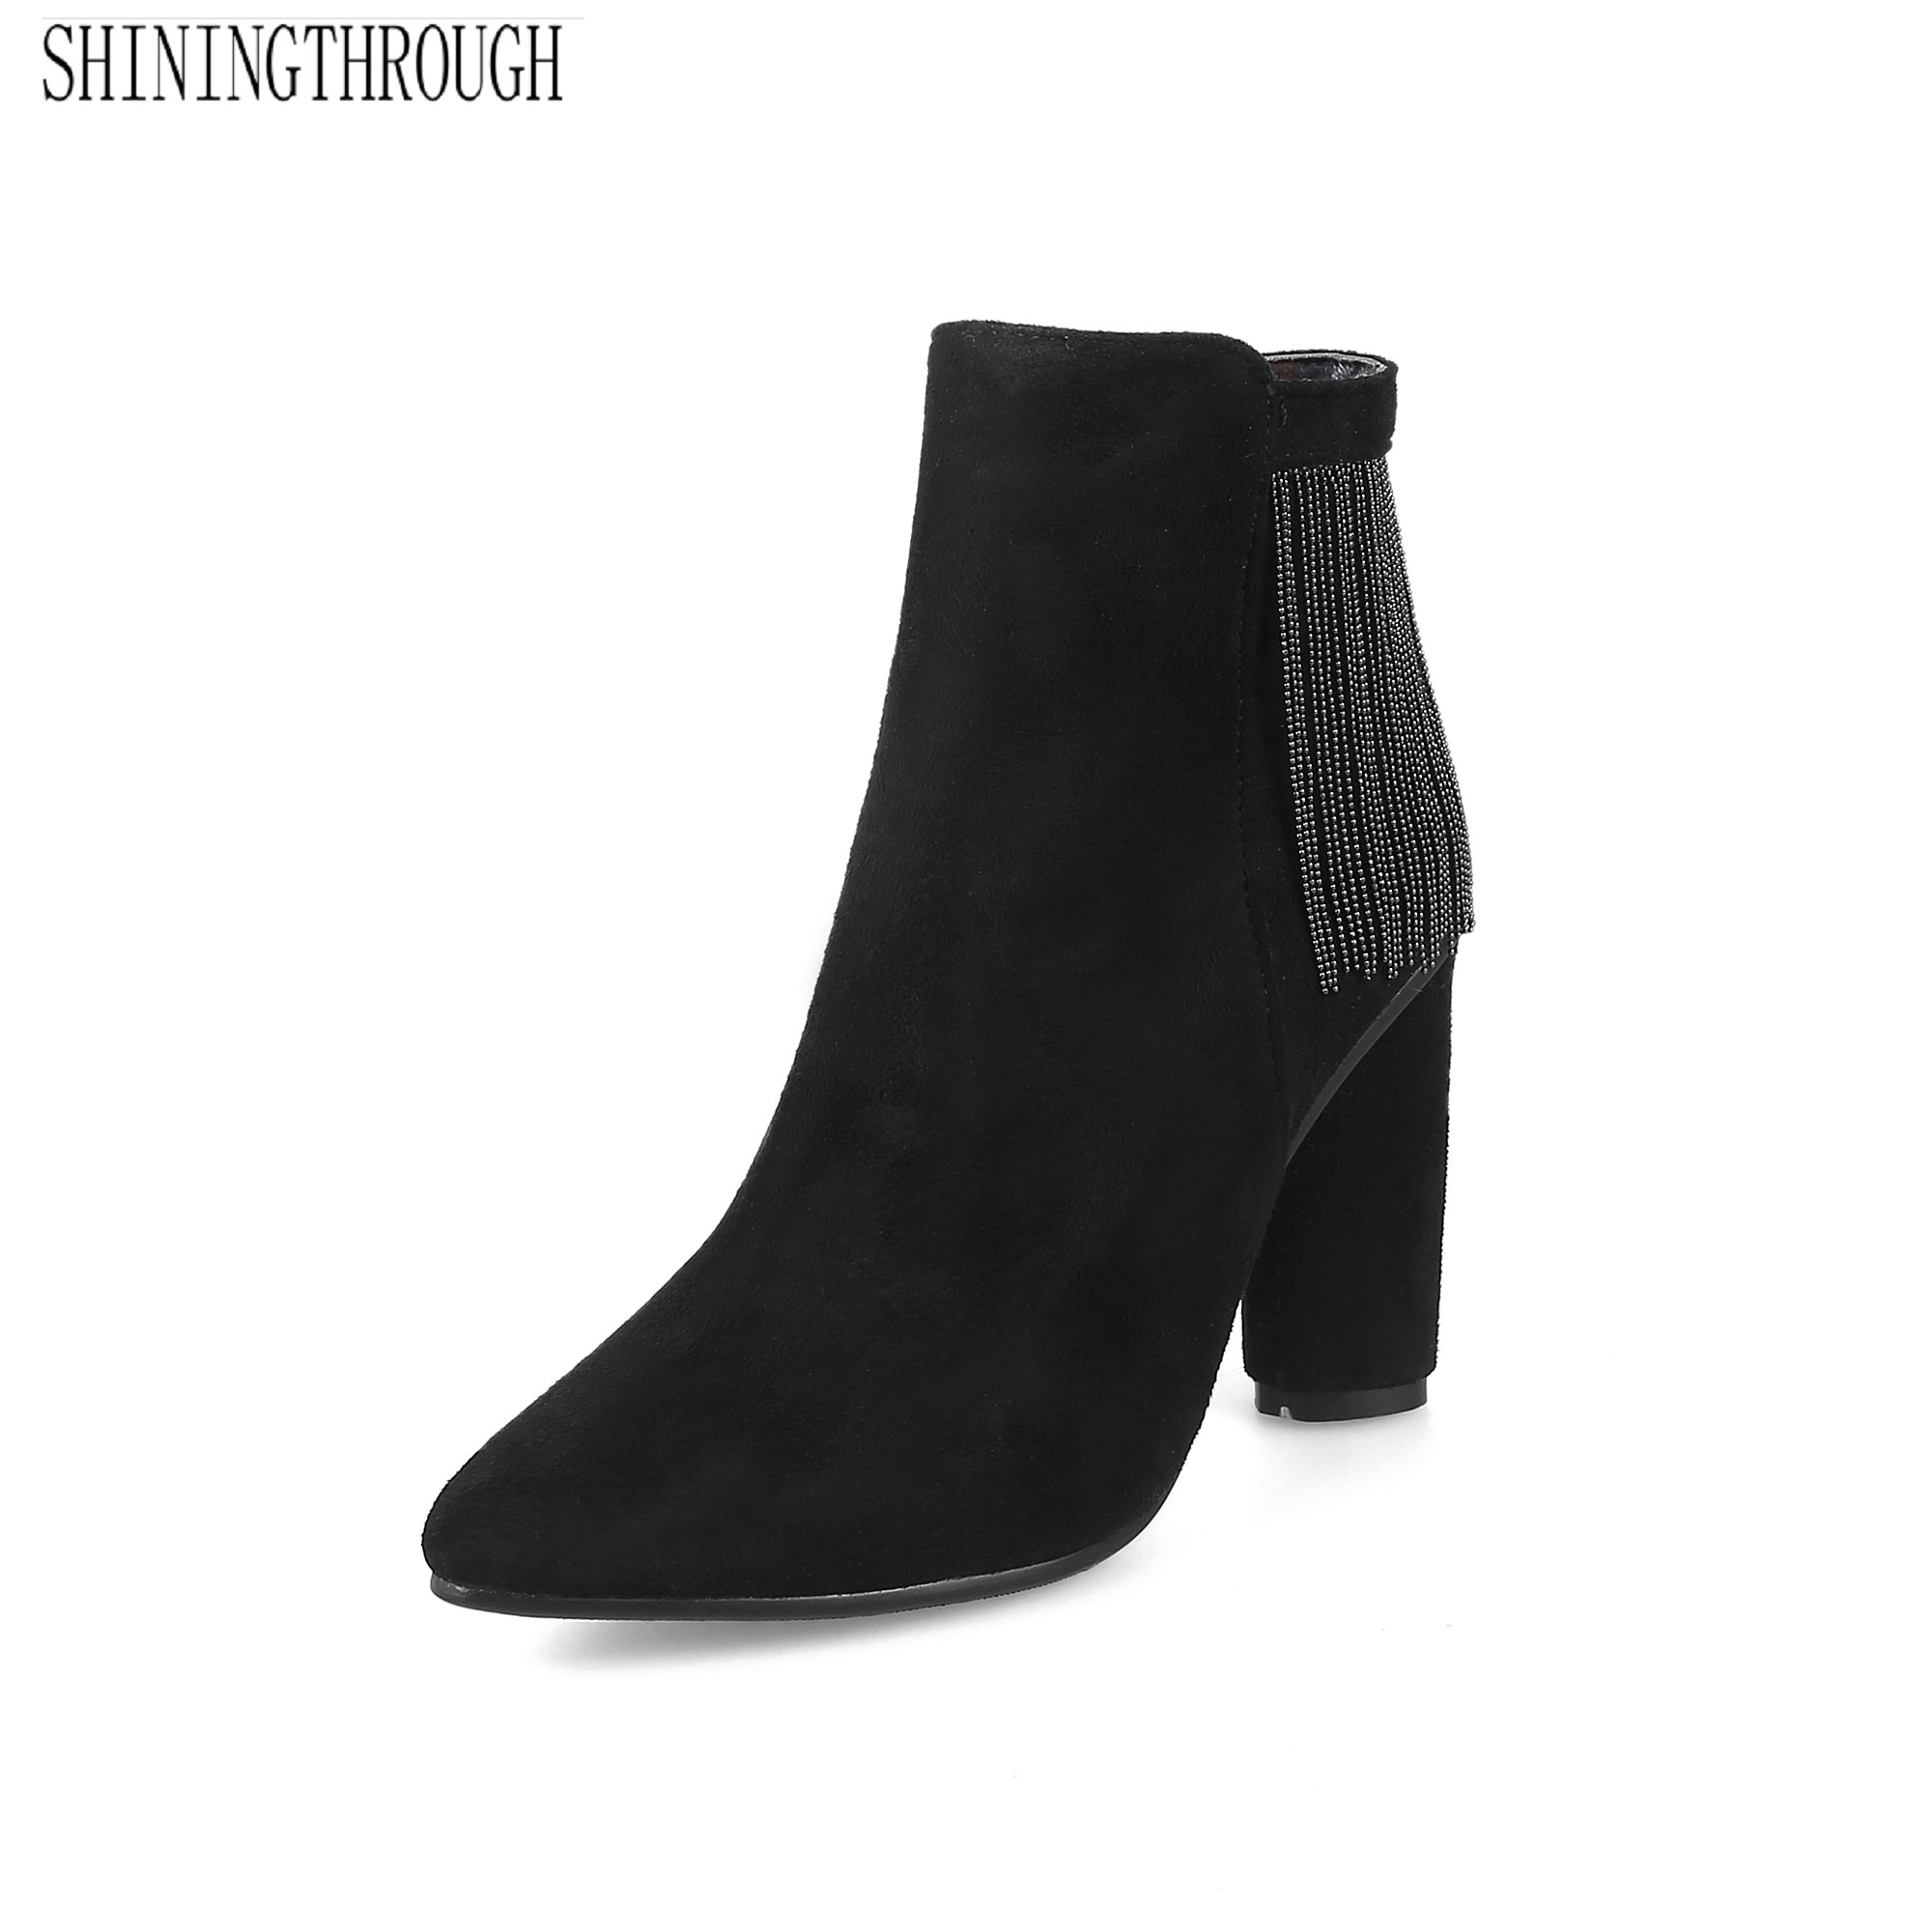 New elegant ankle Boots high heels boots woman metal tassel Womens Boots ladies dress shoes large size 34-43